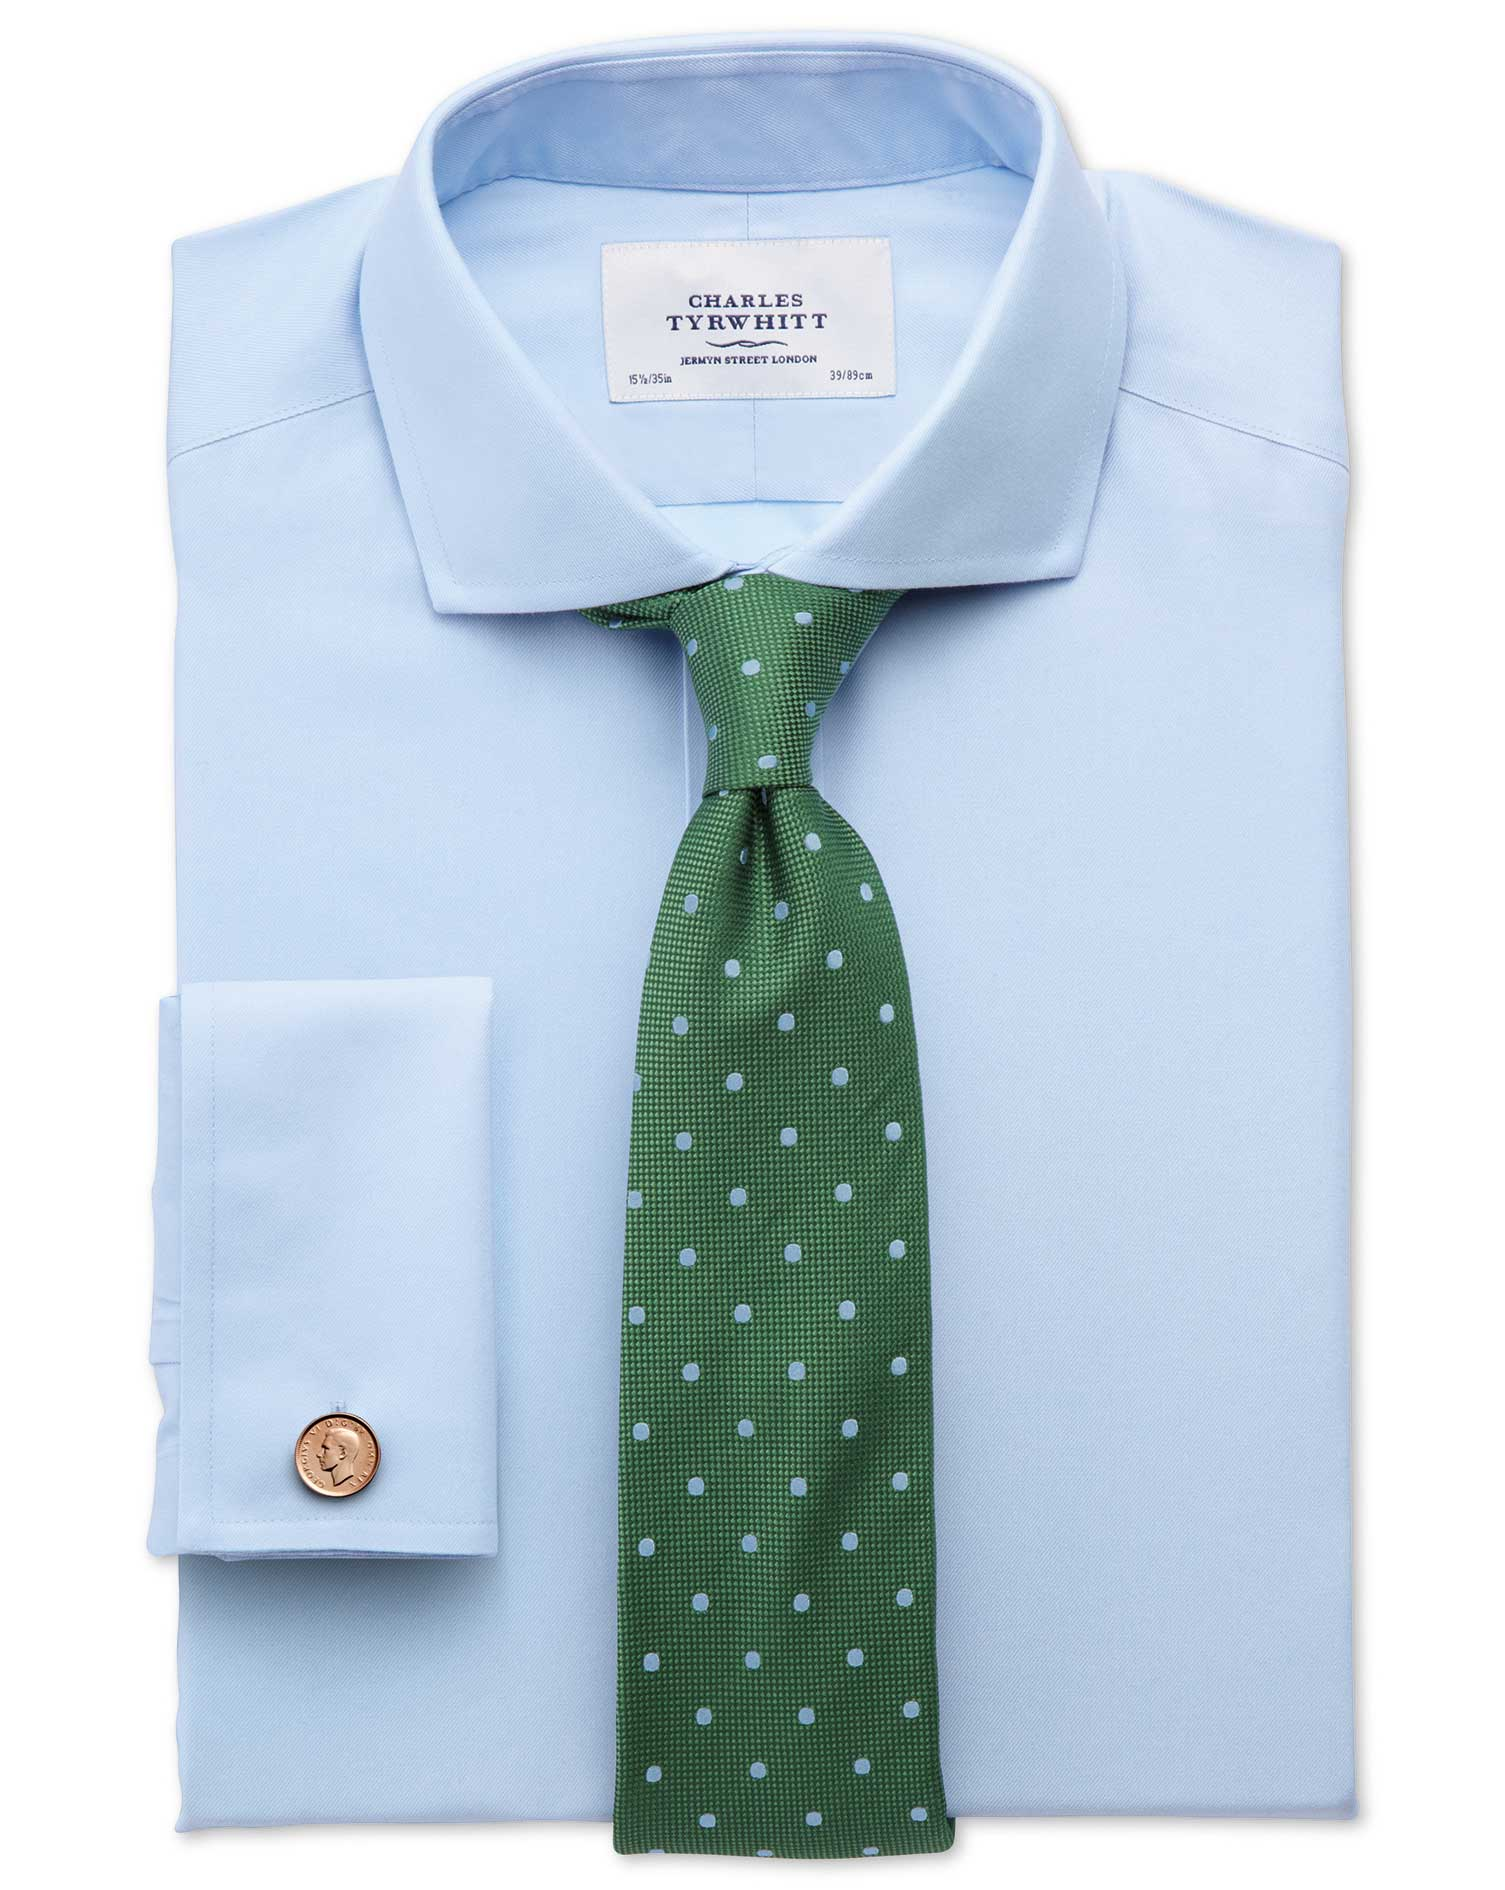 Wide Spread Collar Dress Shirts | Cutaway Collar | Full Cutaway Collar